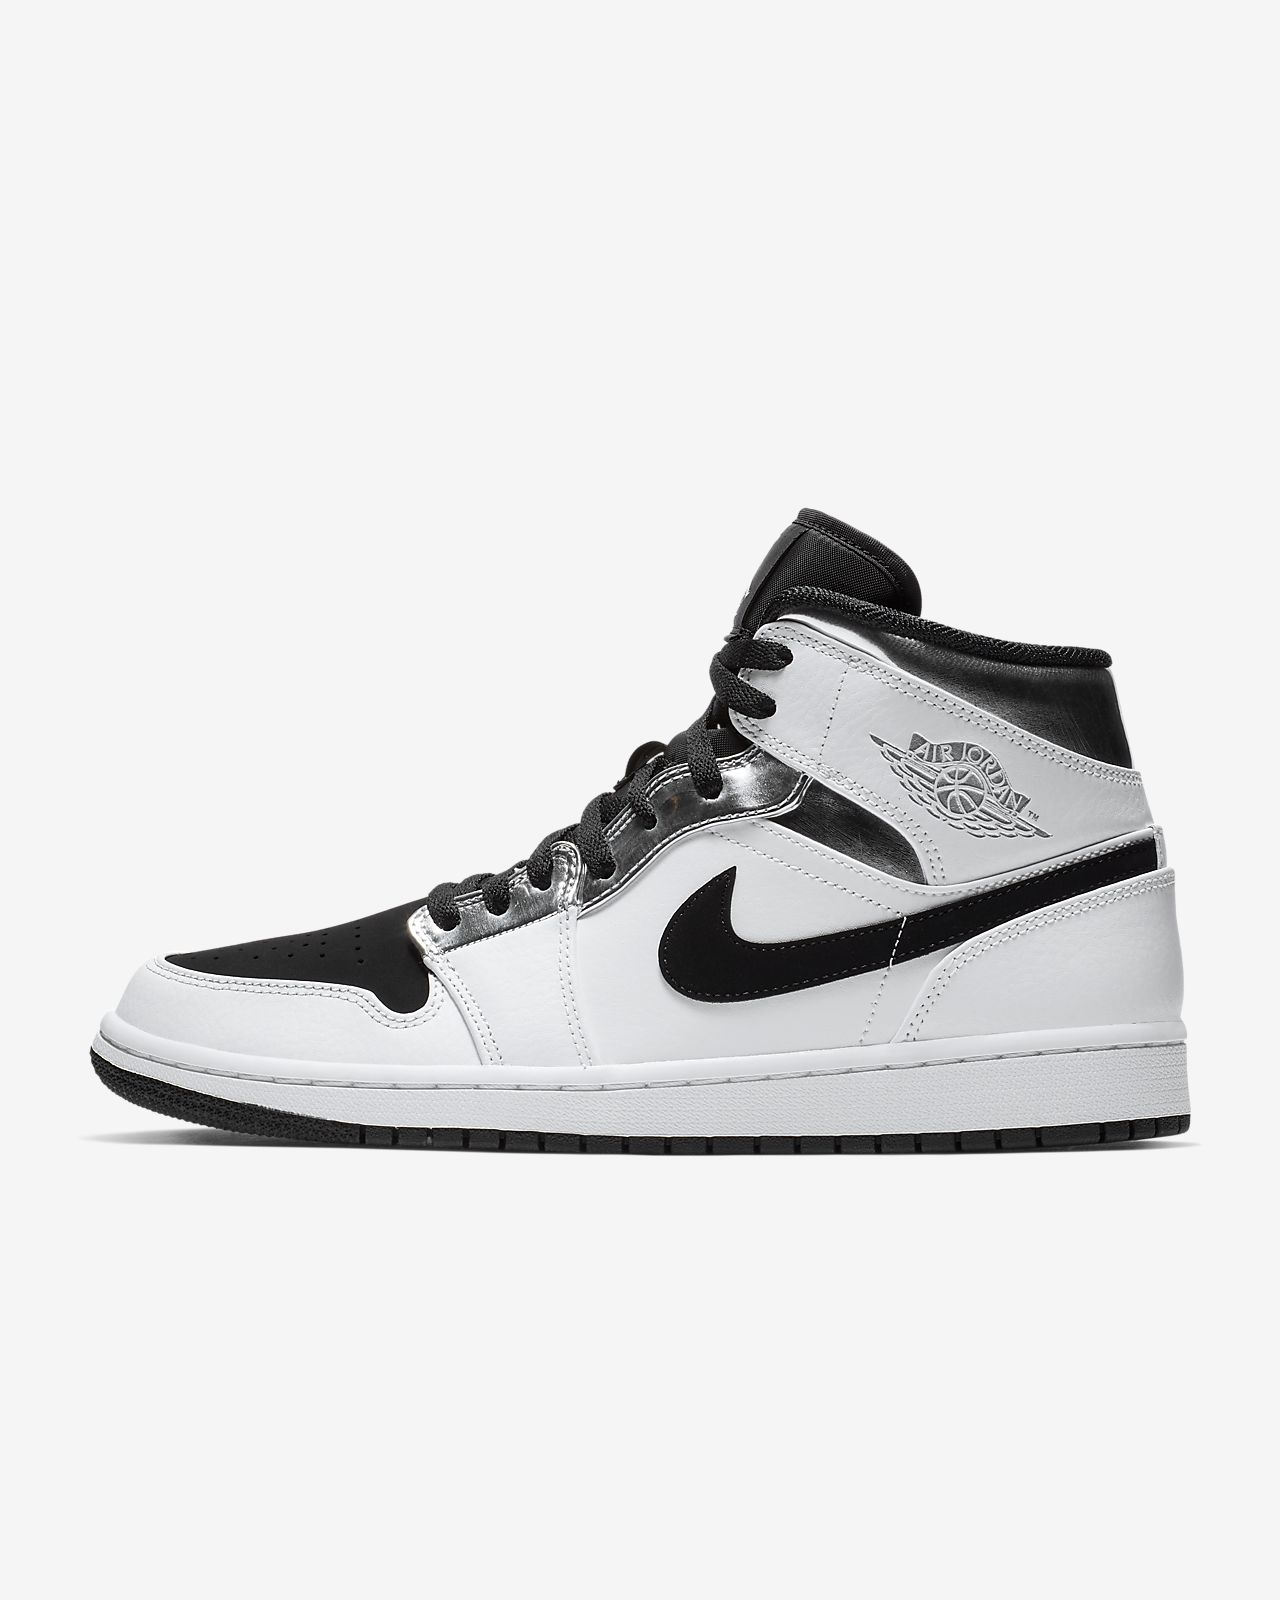 5d3c59d7c06 Air Jordan 1 Mid Men s Shoe. Nike.com